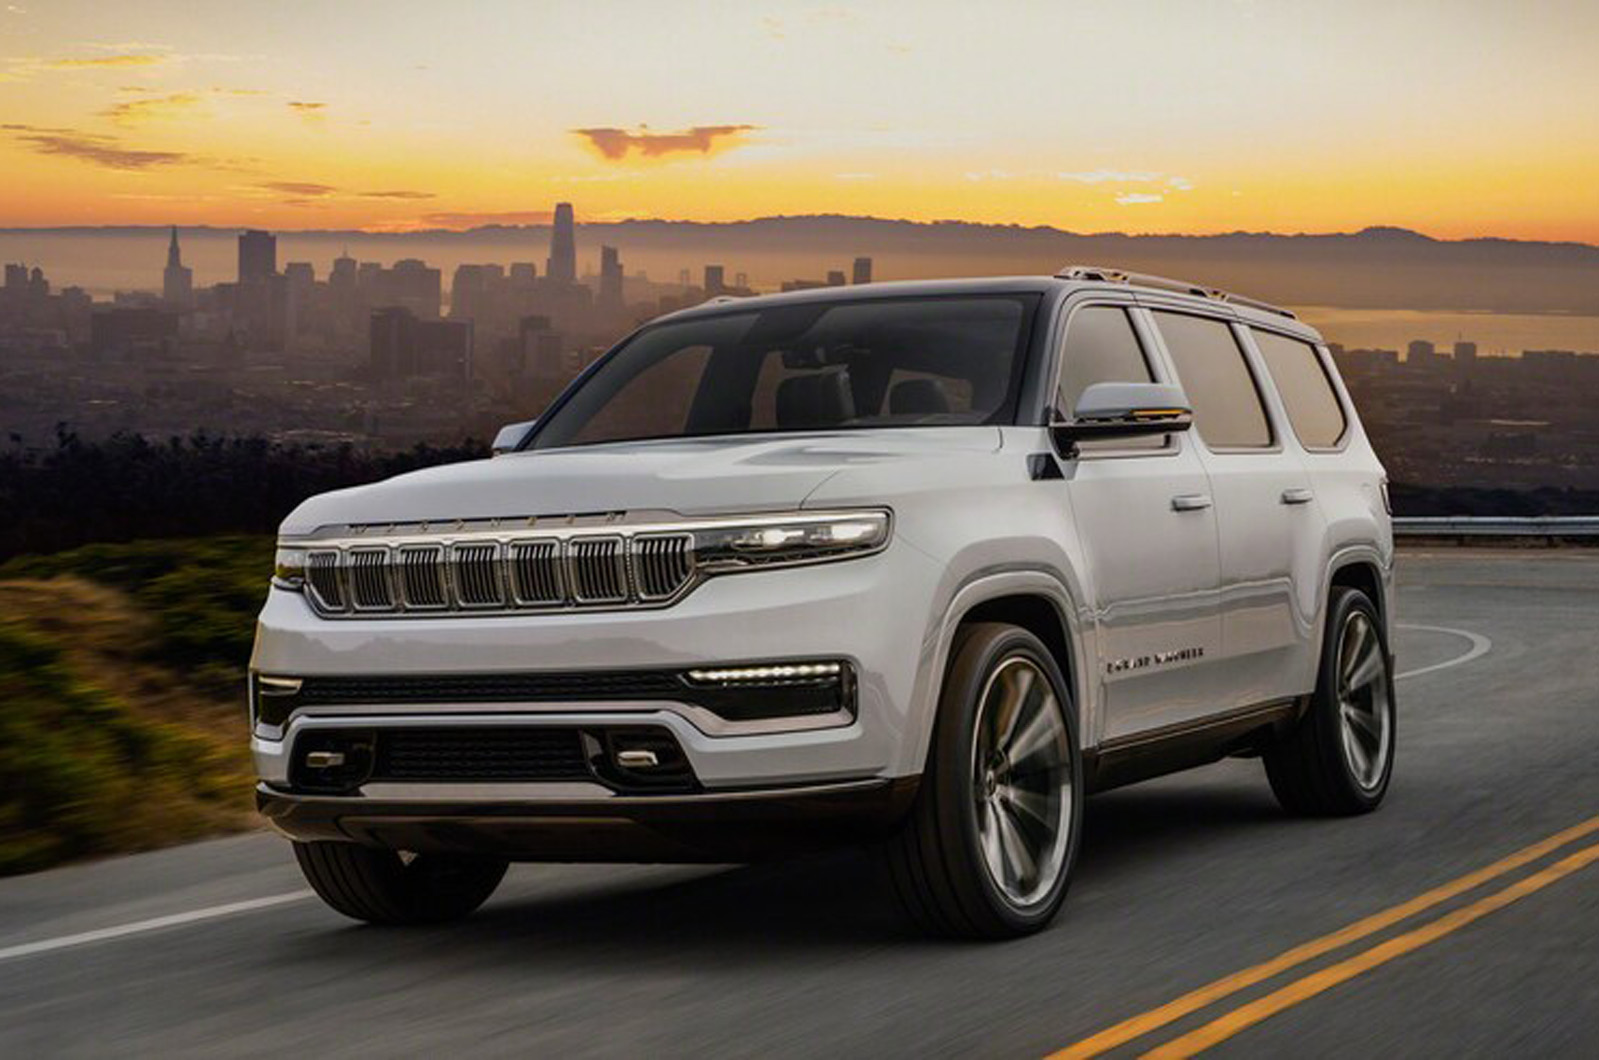 New Jeep Grand Wagoneer Concept Previews 2021 Luxury Suv Autocar